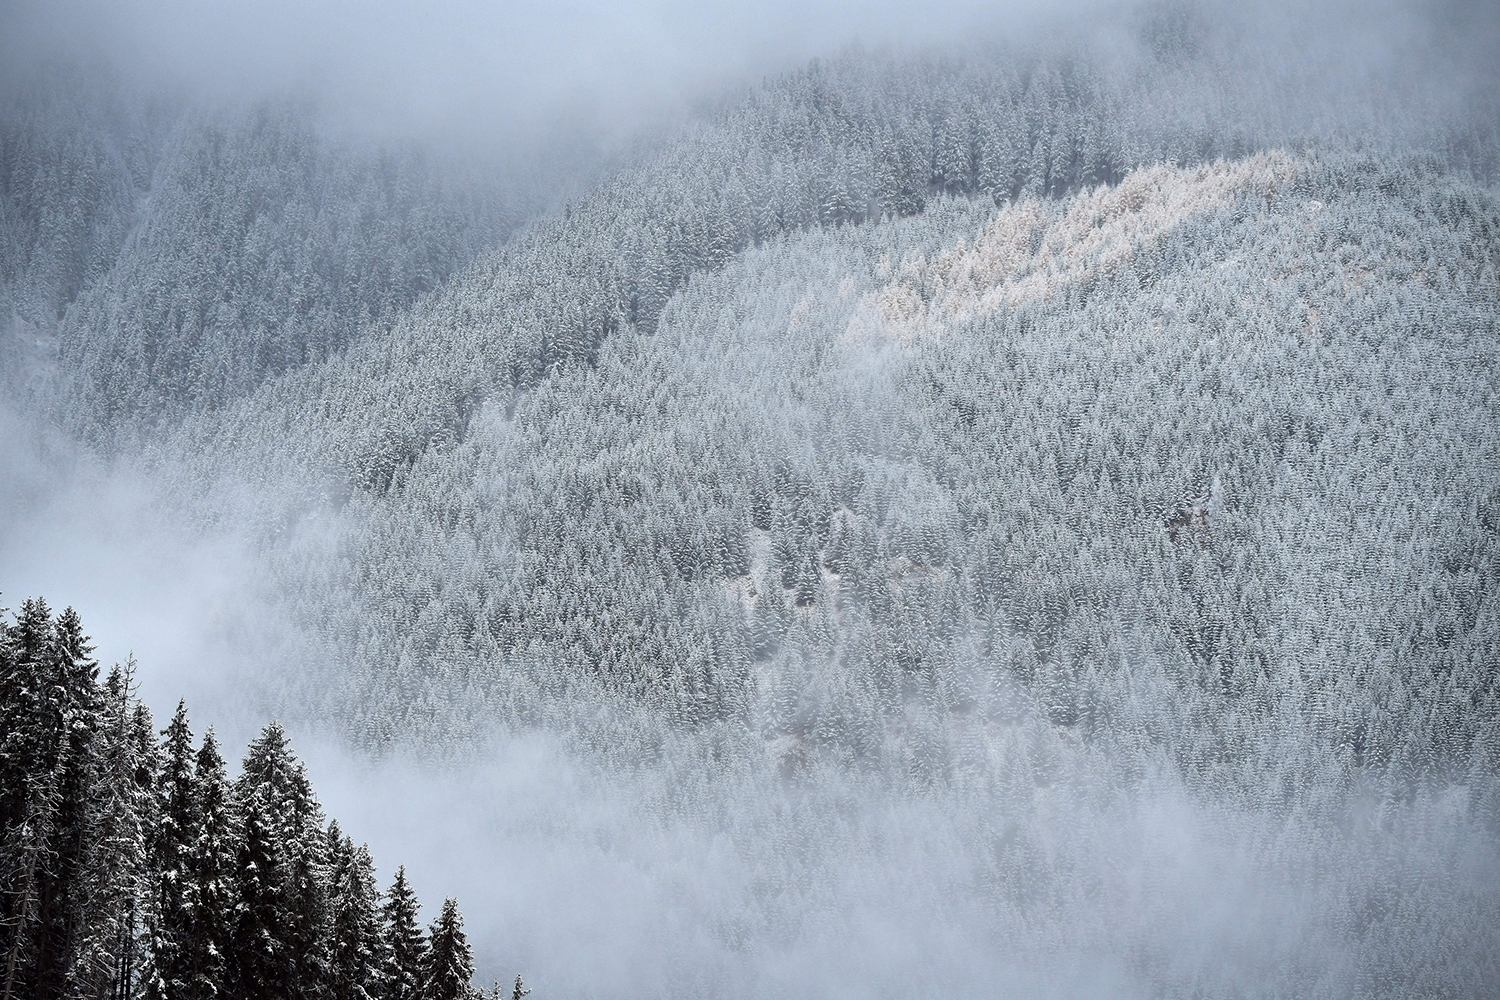 Snow covers fir trees at Valea Rea (on Fagaras mountains near Nucsoara, central Romania, on Oct. 31. DANIEL MIHAILESCU/AFP via Getty Images